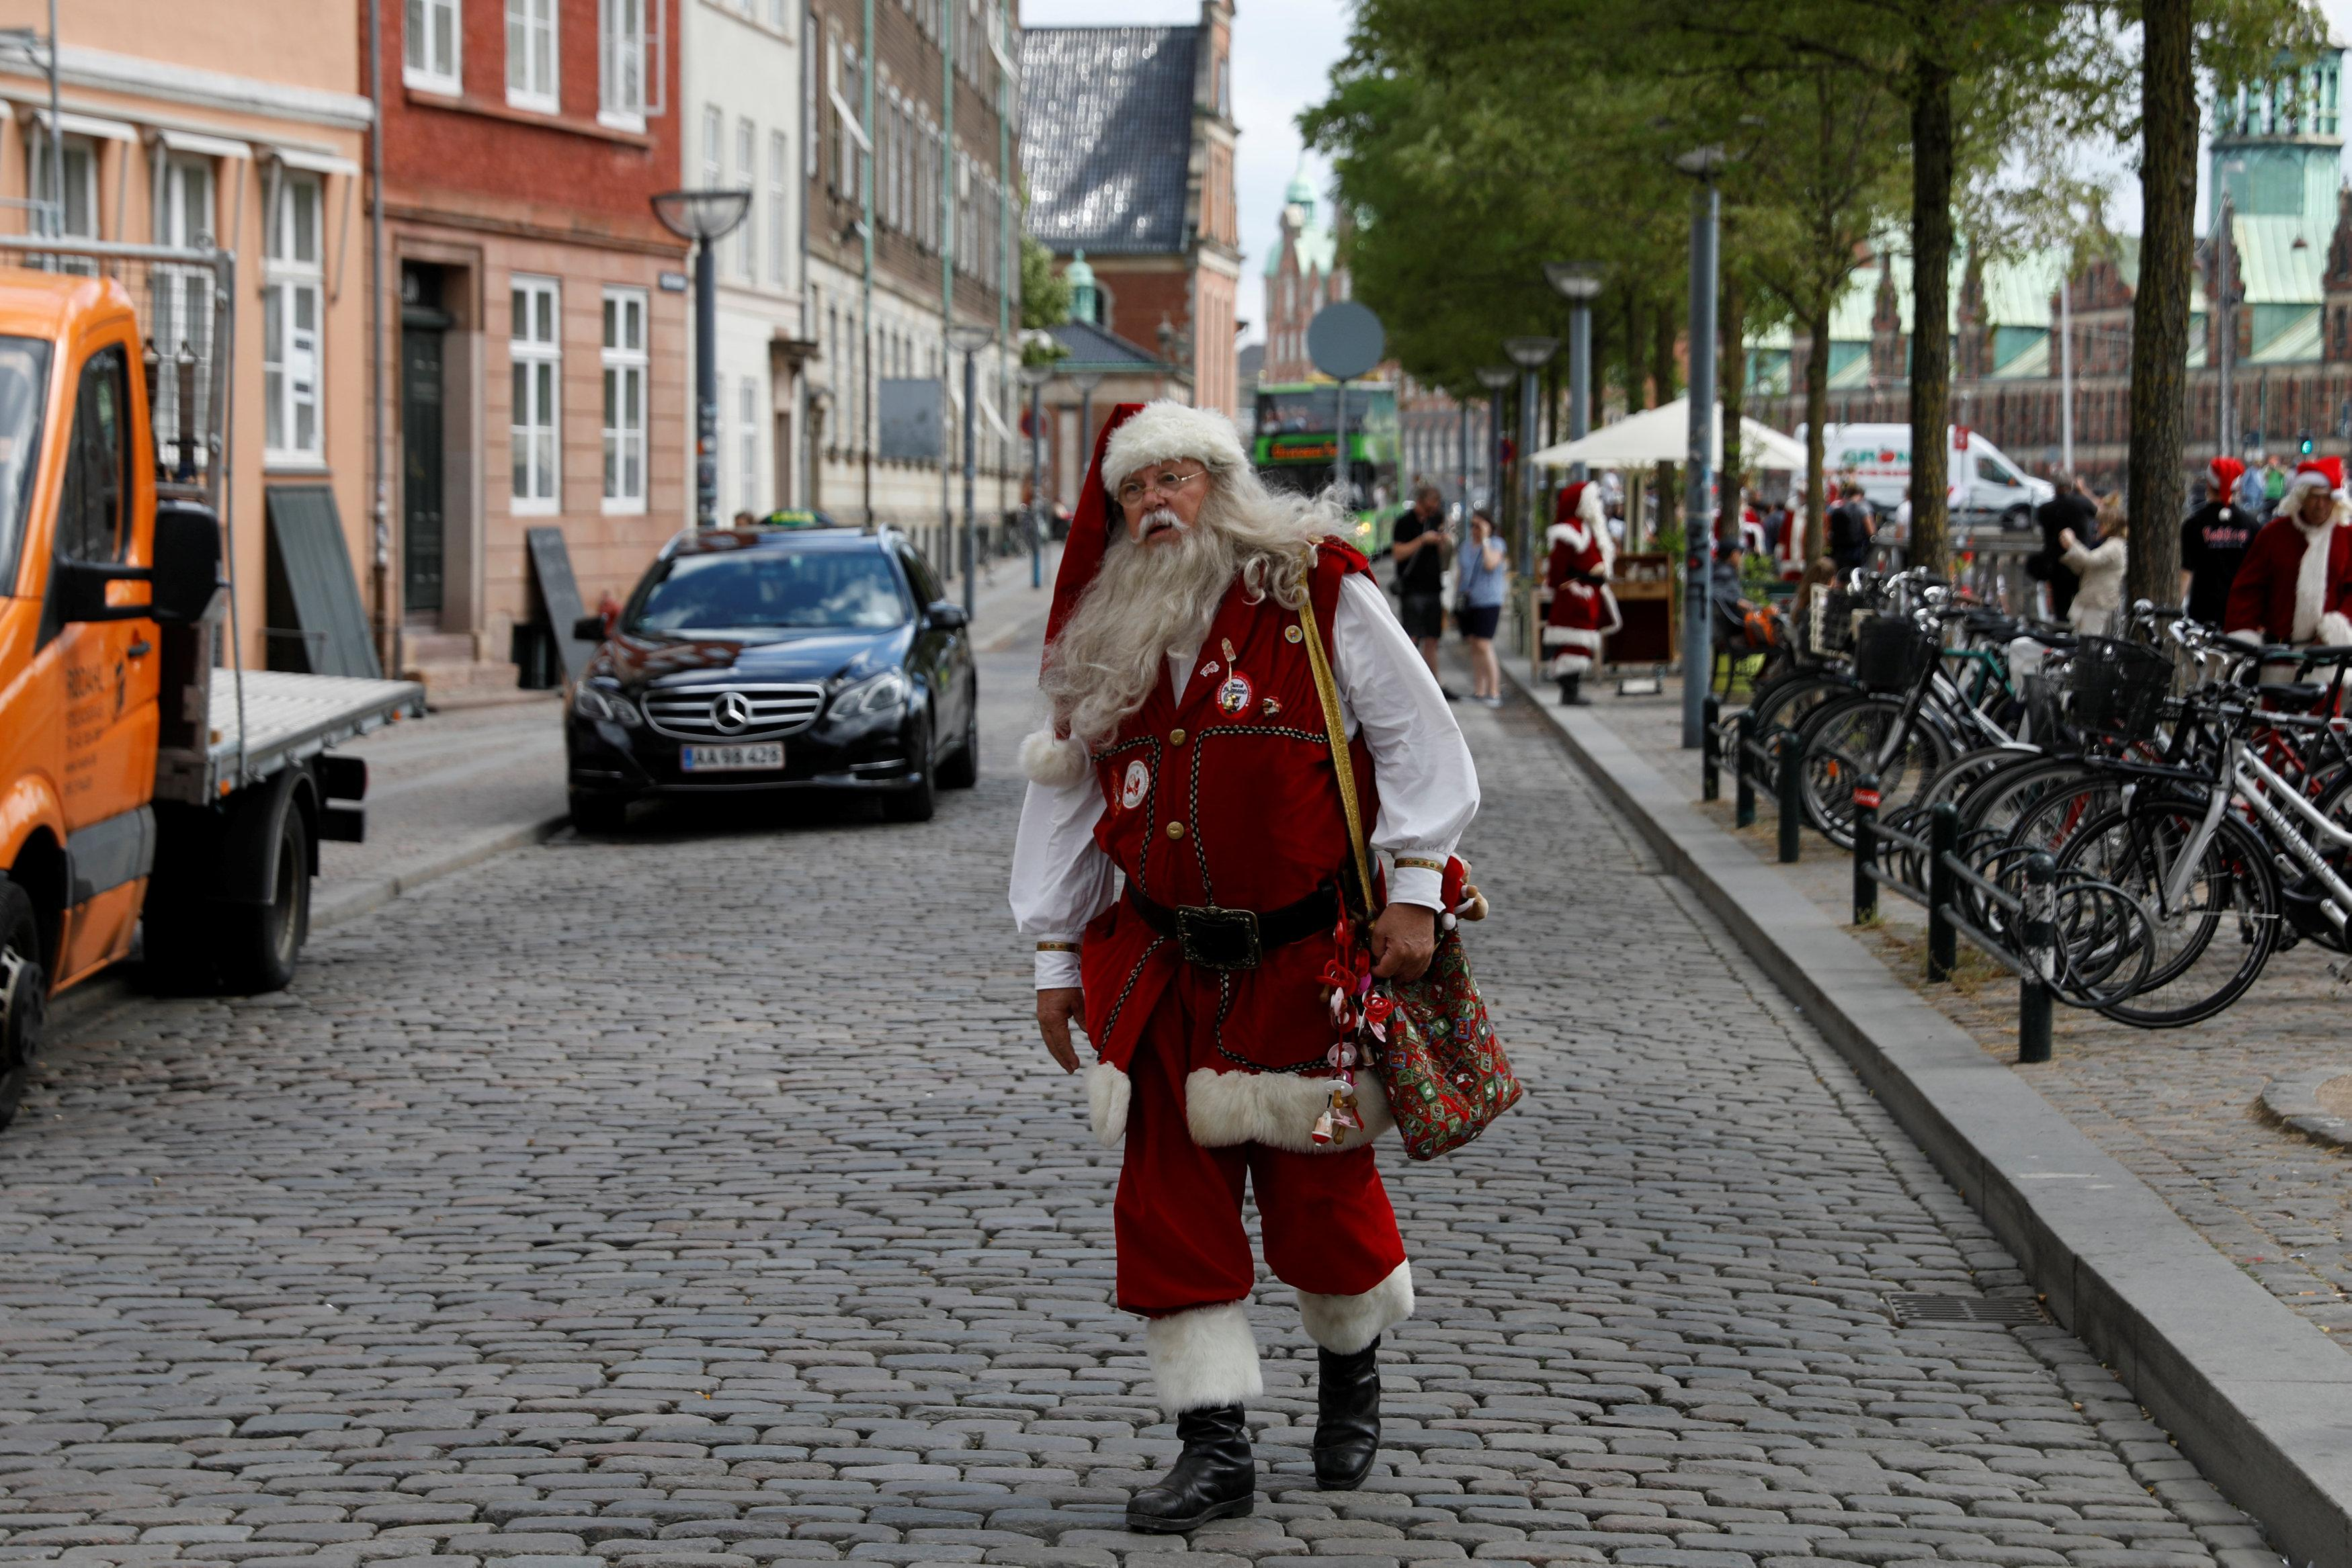 A man dressed as Santa Claus walks through the streets between events for the World Santa Claus Congress, an annual event held every summer in Copenhagen, Denmark, July 23, 2018.  Andrew Kelly